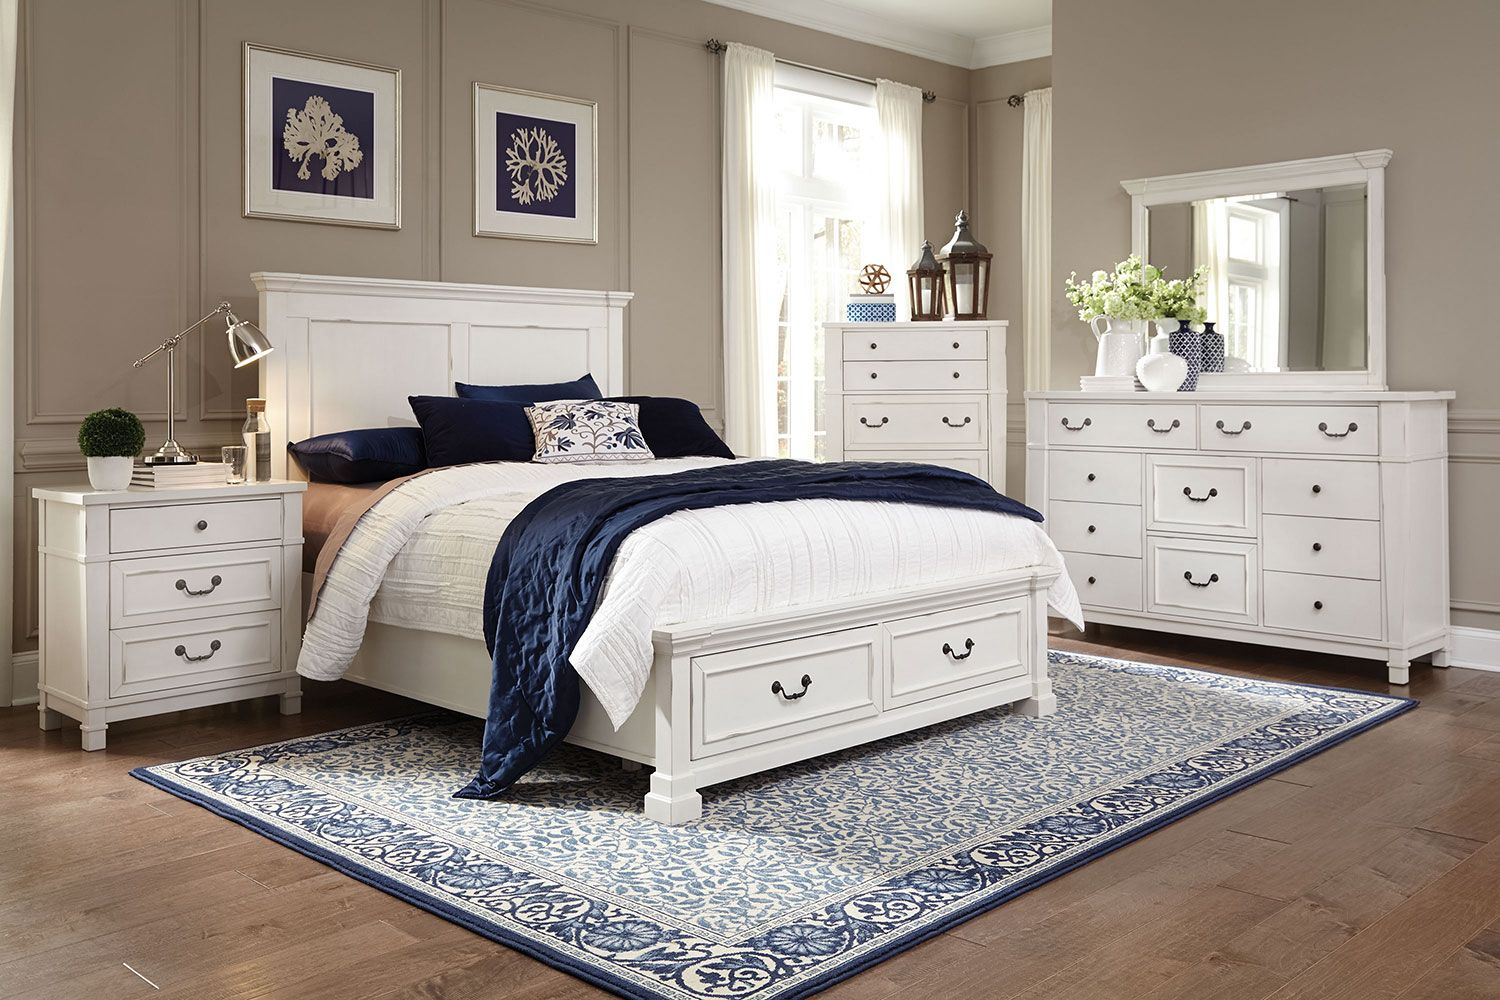 Bedroom Furniture - Taryn 5-Piece King Storage Bedroom Set